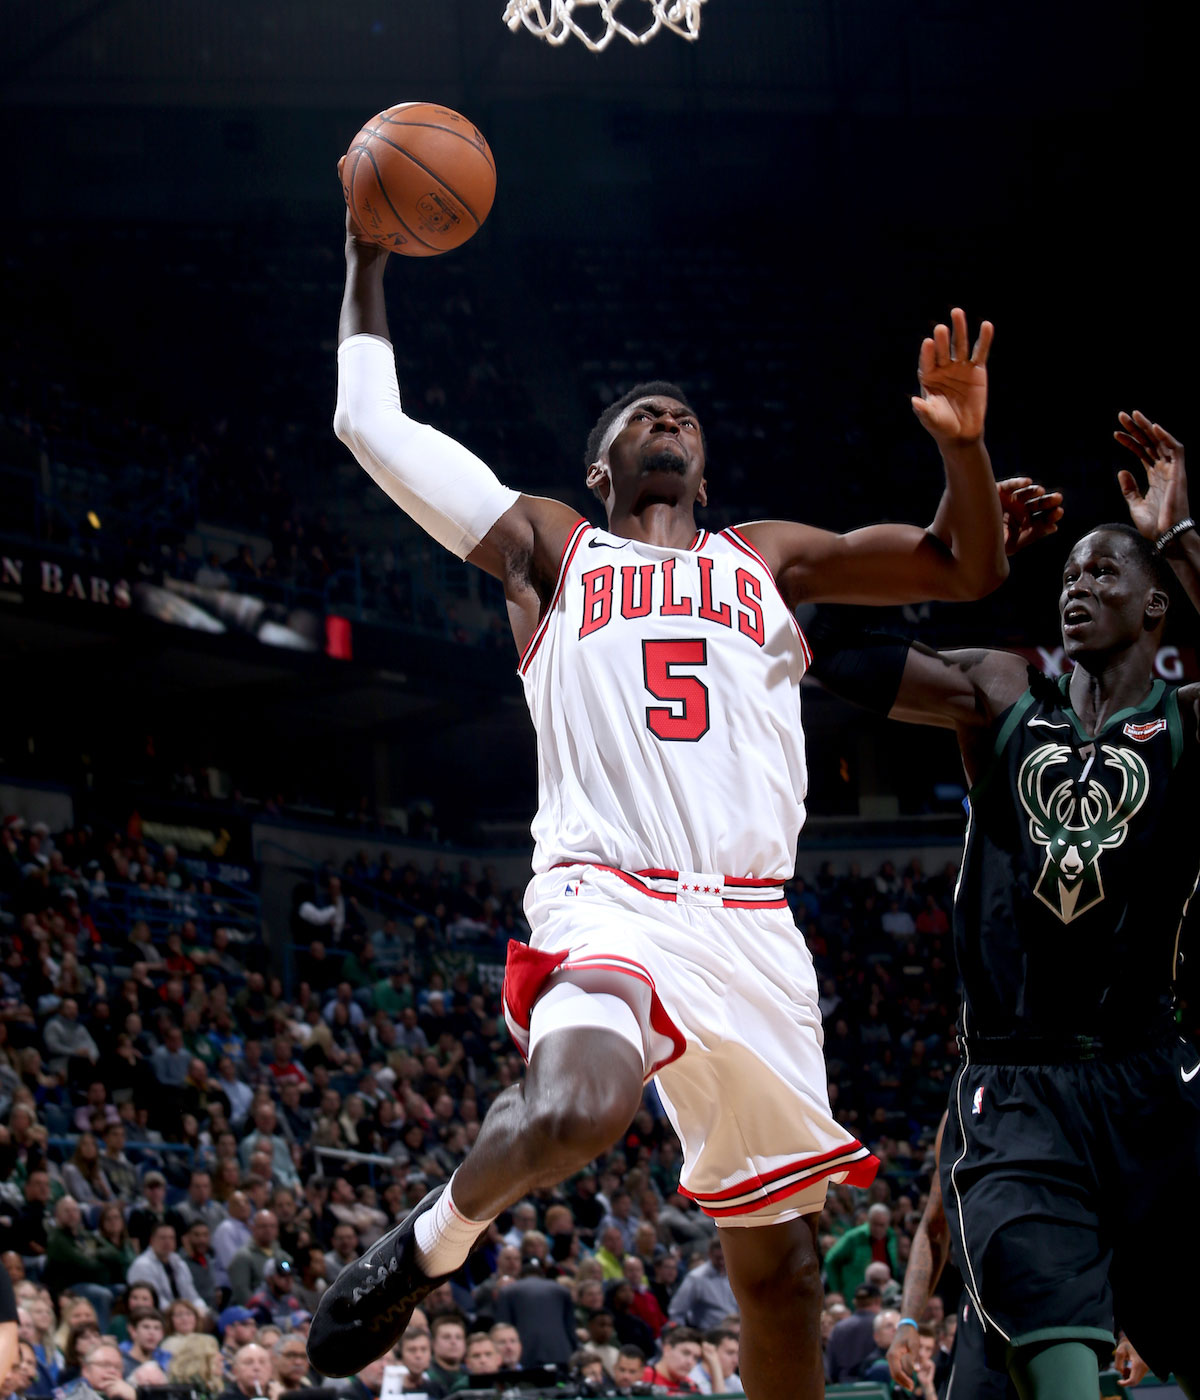 NBA Predictions: Will 76ers cover as small favorite at Bulls? 12/18/17